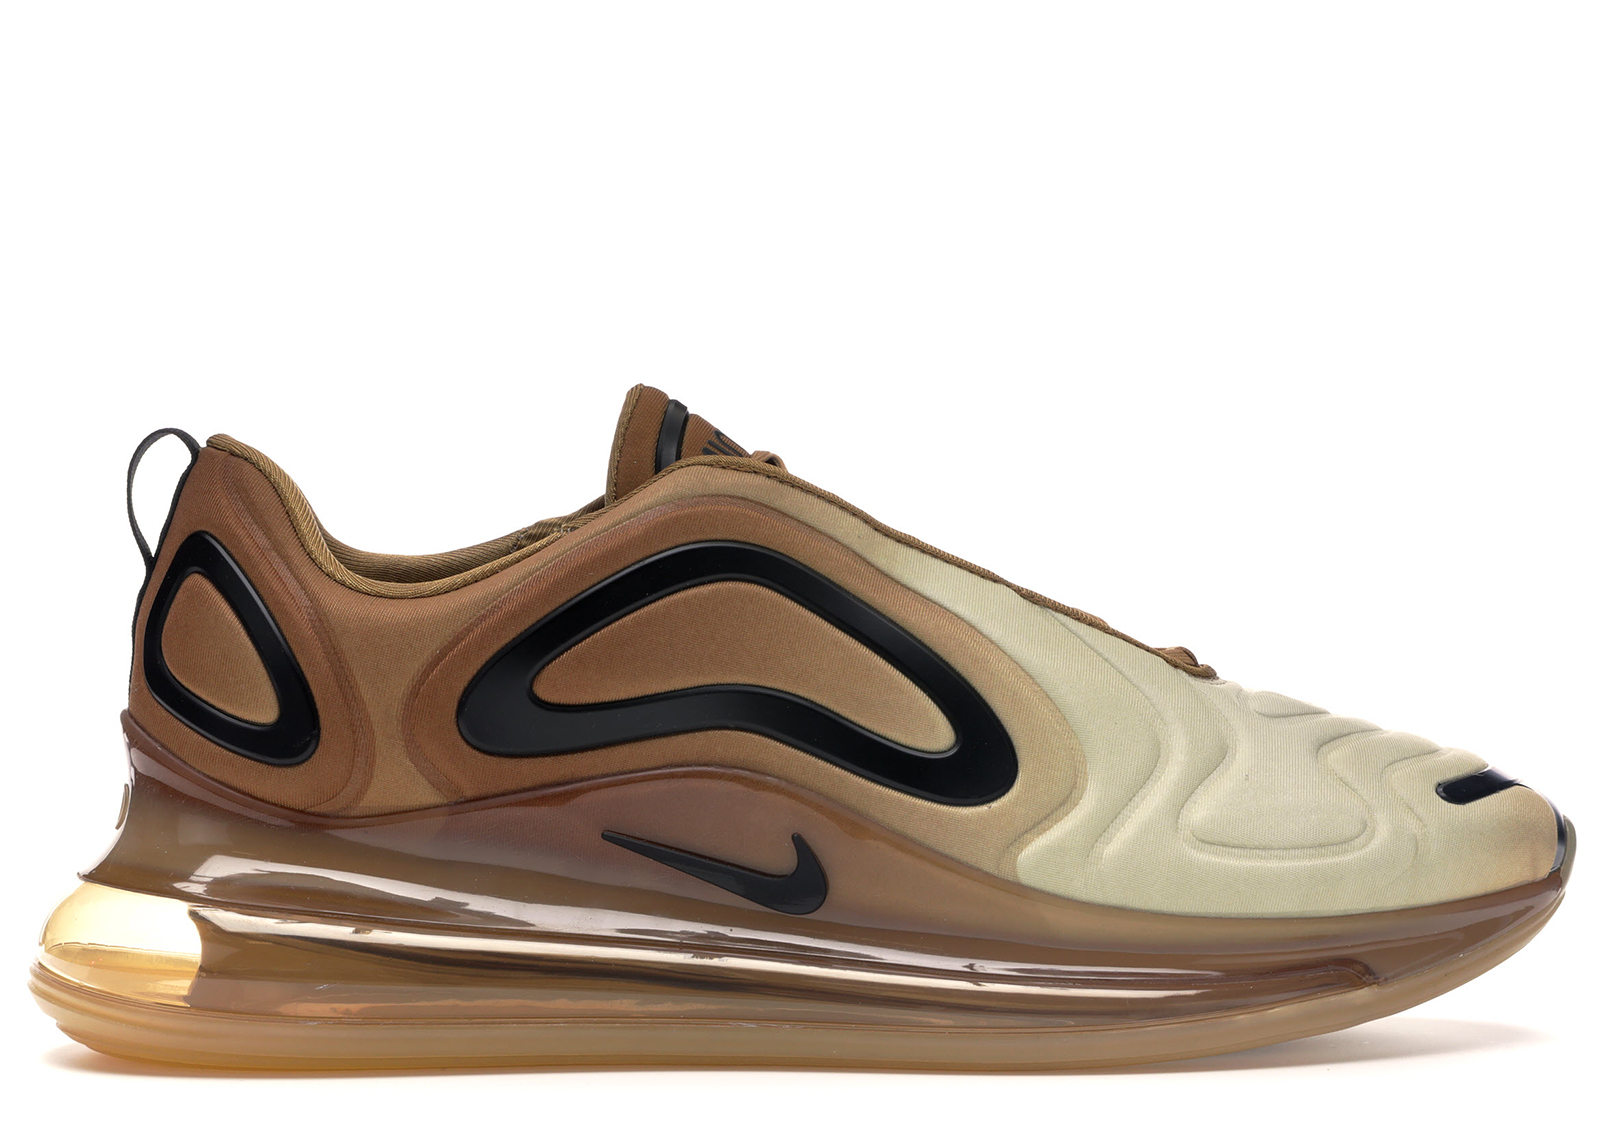 Nike Air Max 720 'Desert Gold' AO2924 700